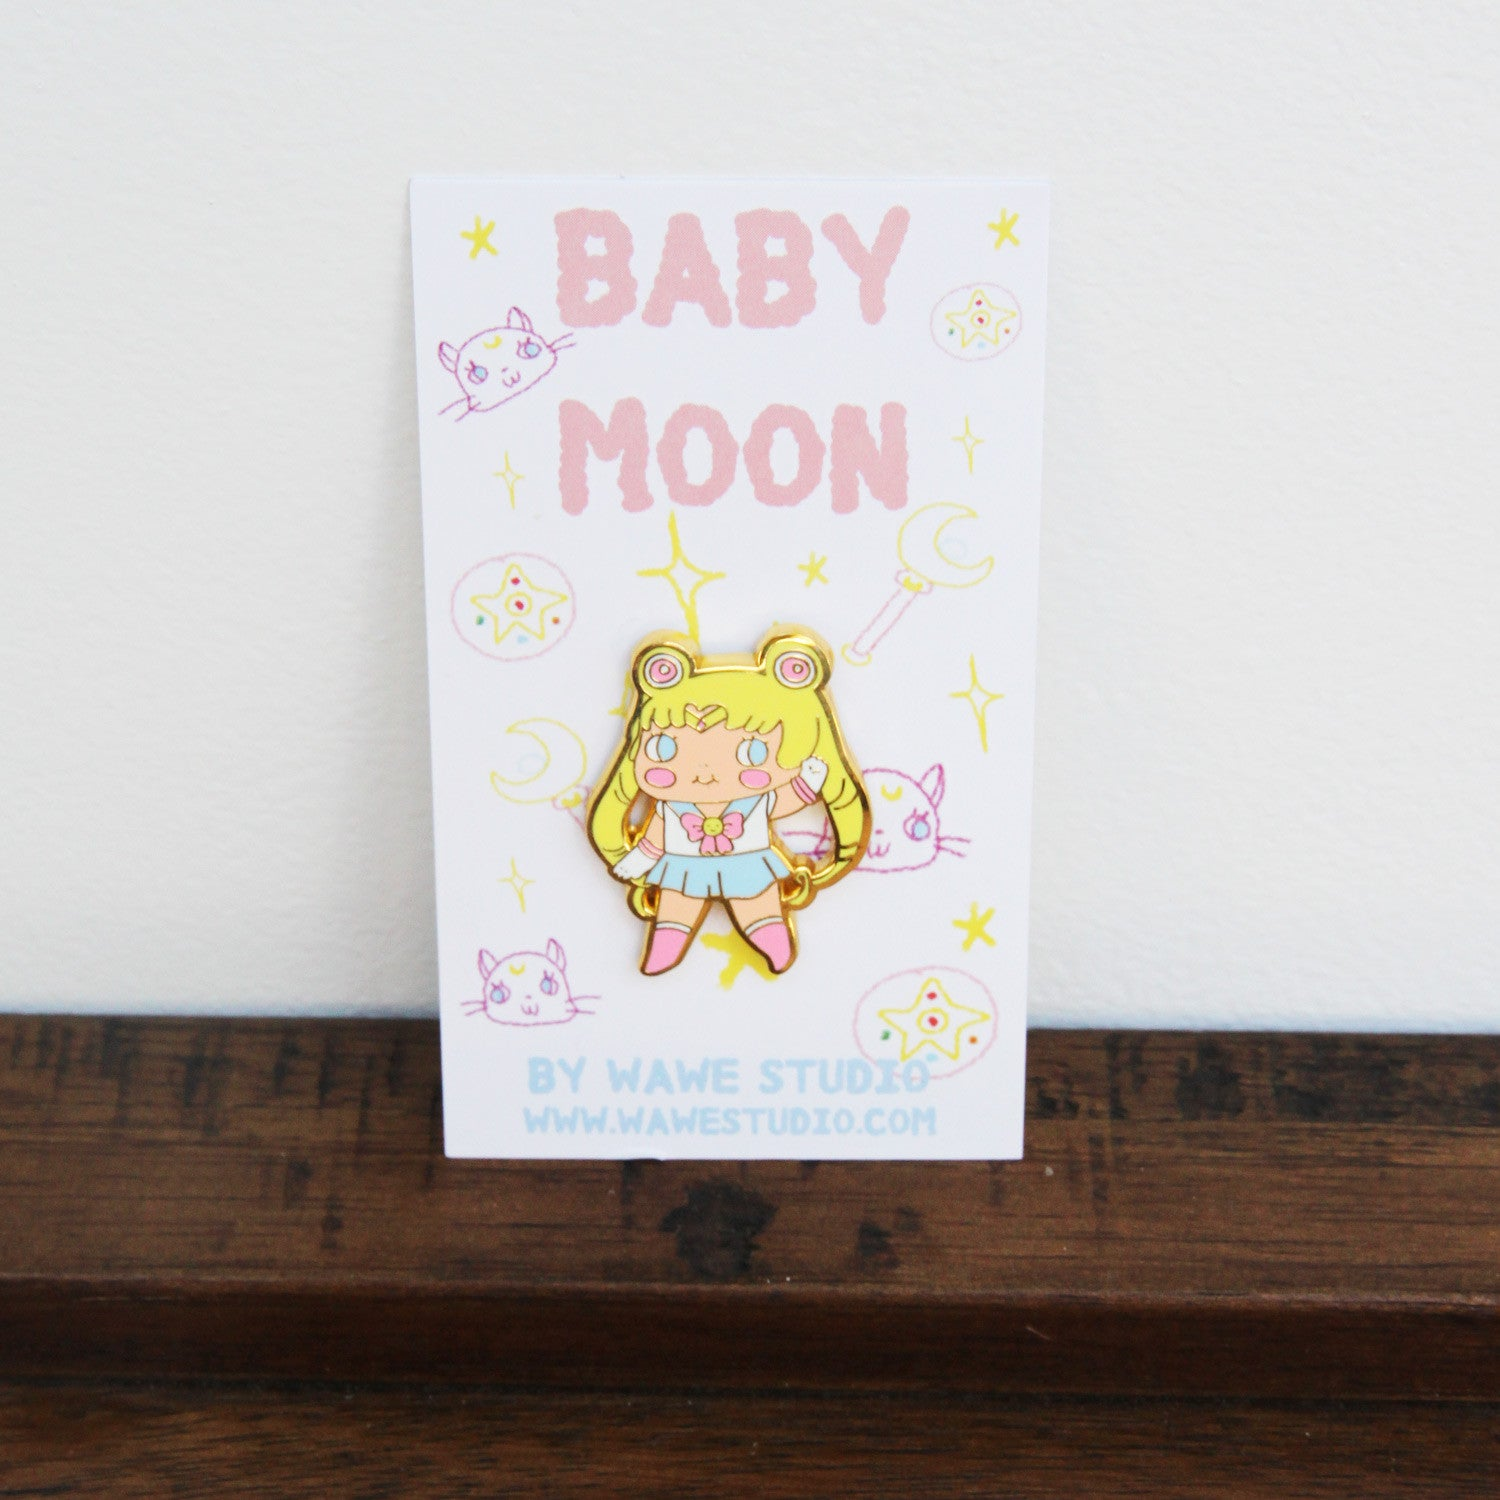 Baby Moon | Wawe Studio | Wawe Studio at Sustain - Gallery and Shop - Chicago, IL